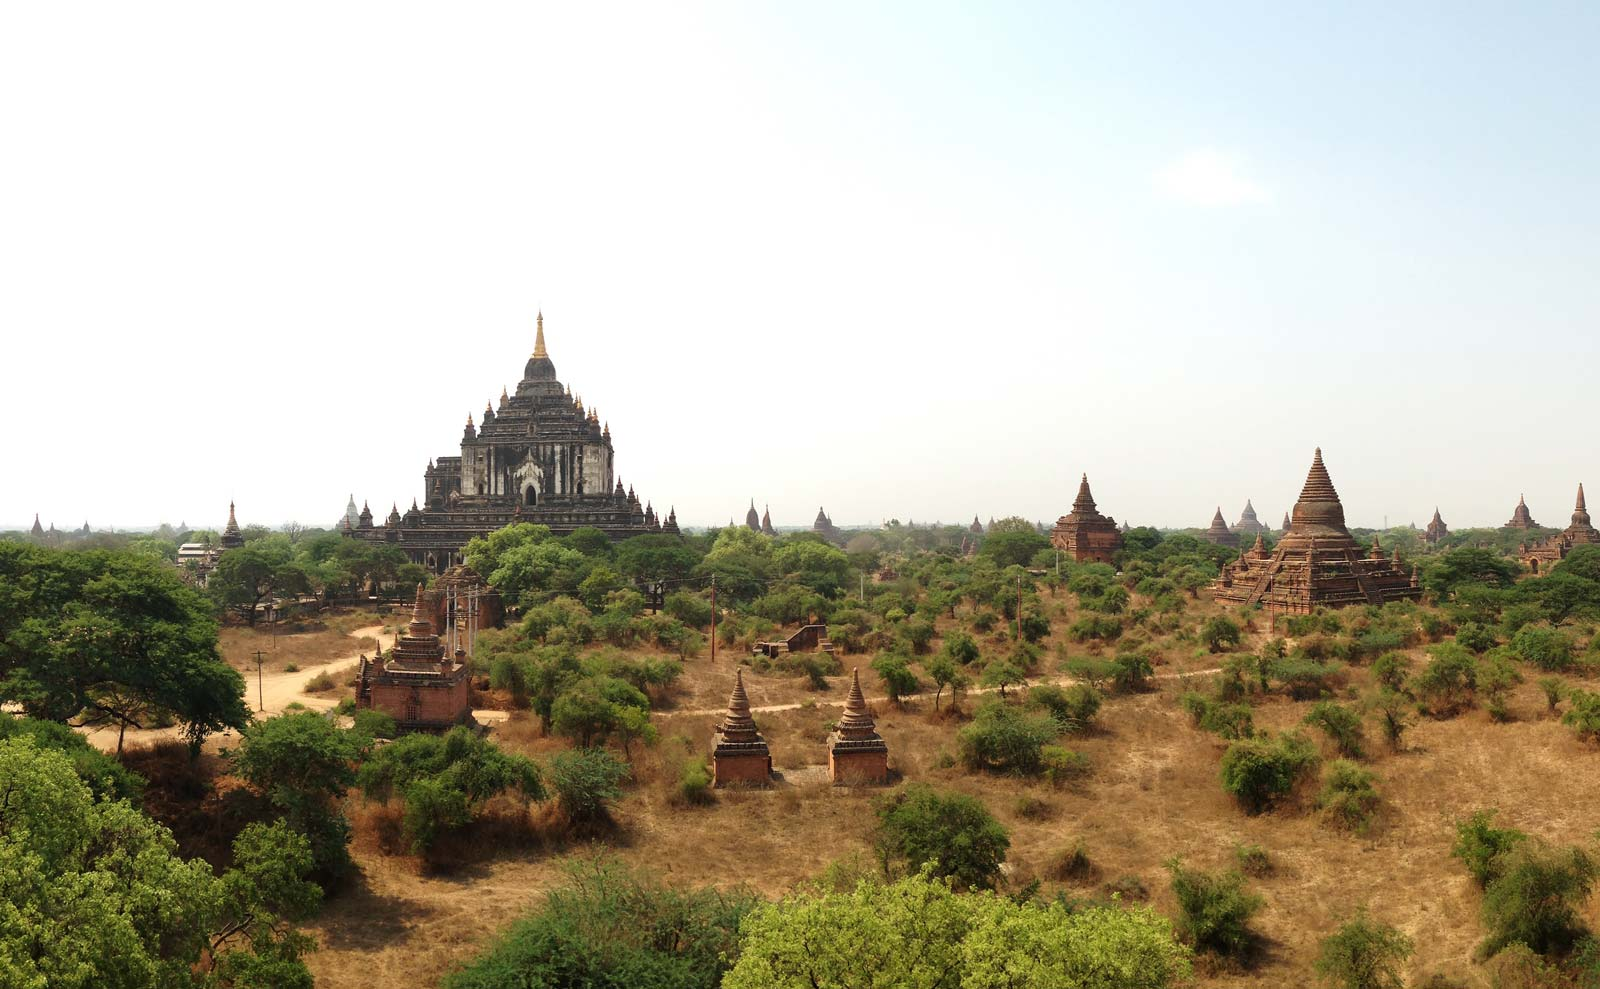 23 Days in Myanmar, Part Two: Bagan | ArtSocket Gallery Magazine